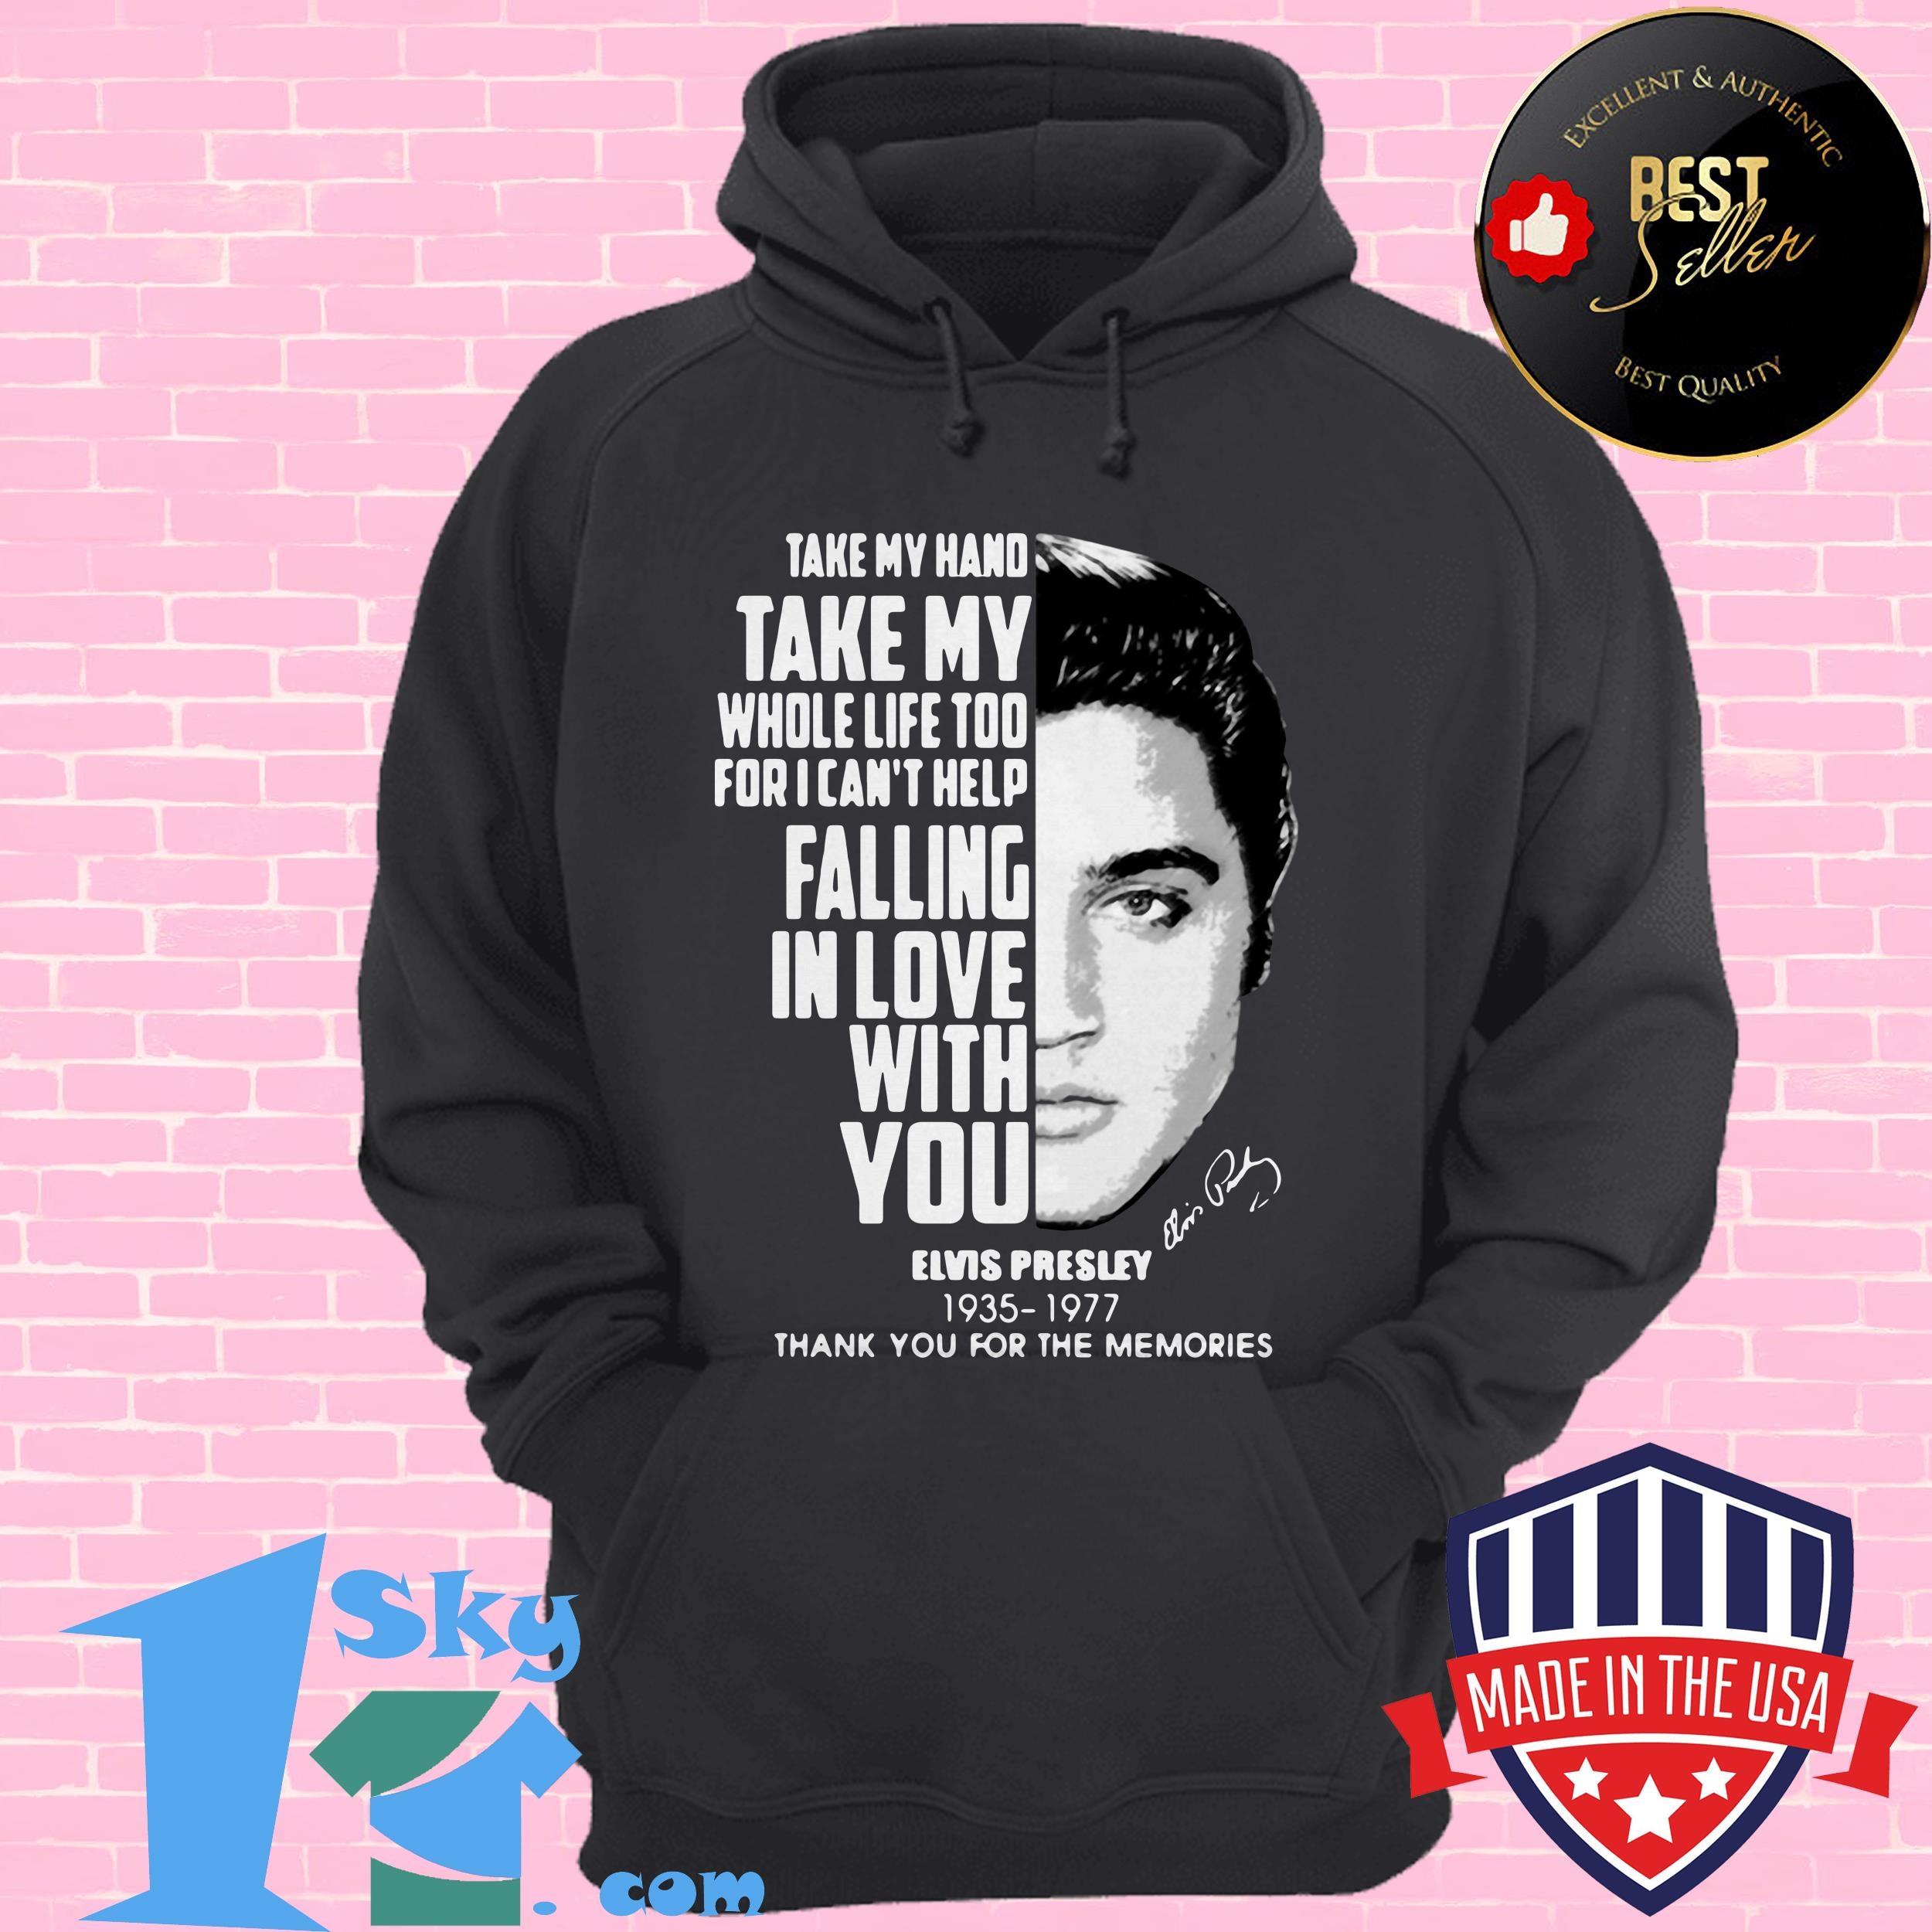 take my hand take my whole life too for i cant help fall in love with you elvis presley hoodie - Take My Hand Take My Whole Life too for I Can't help Fall in Love with You Elvis Presley shirt